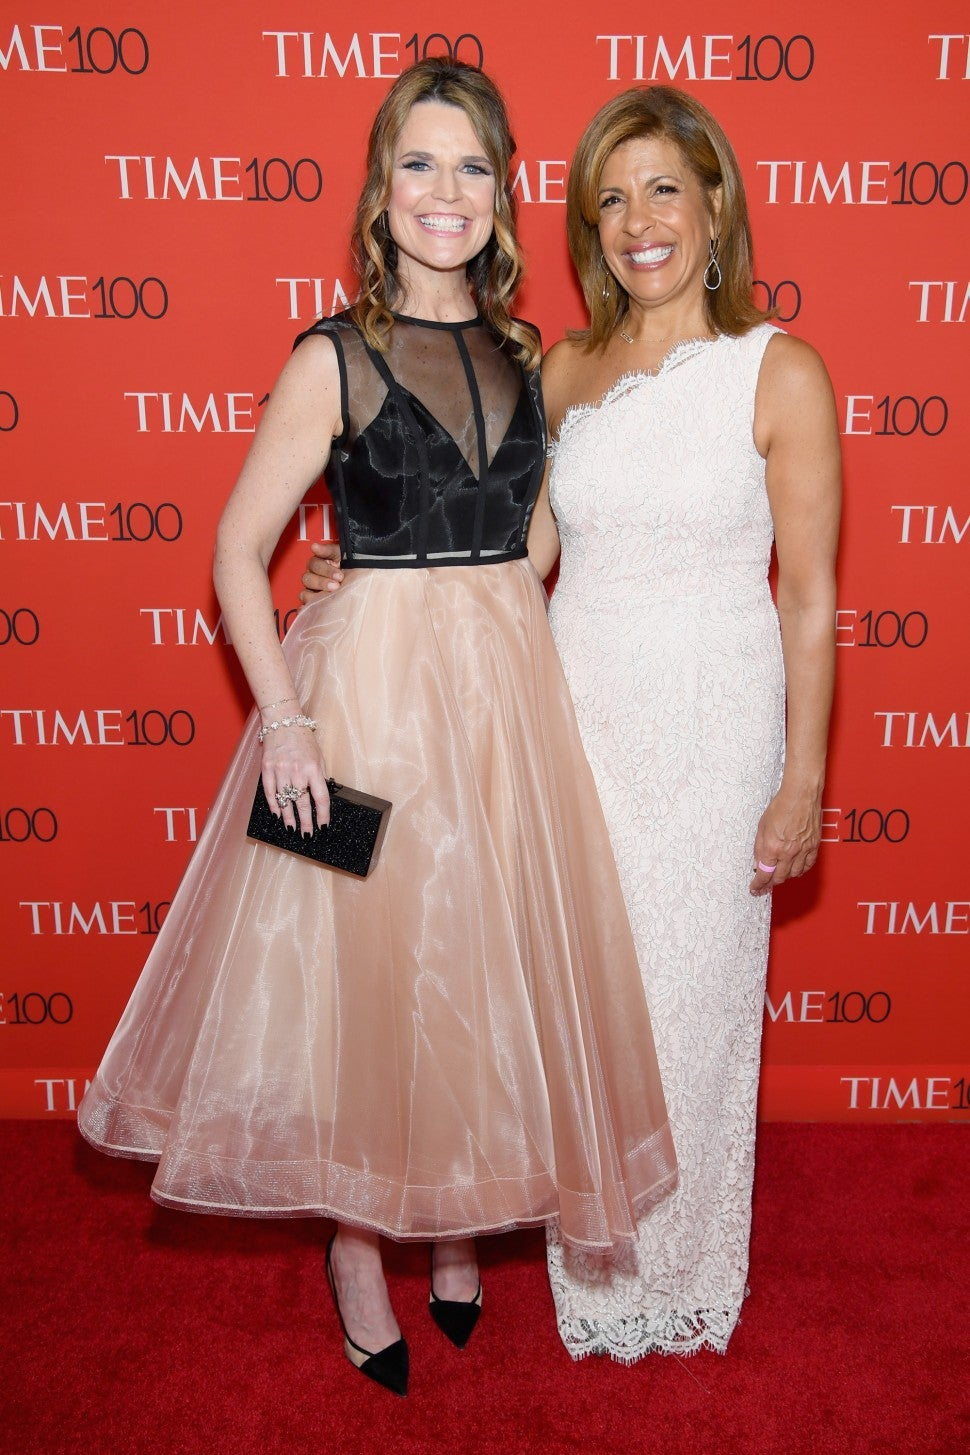 Savannah Guthrie and Hoda Kotb